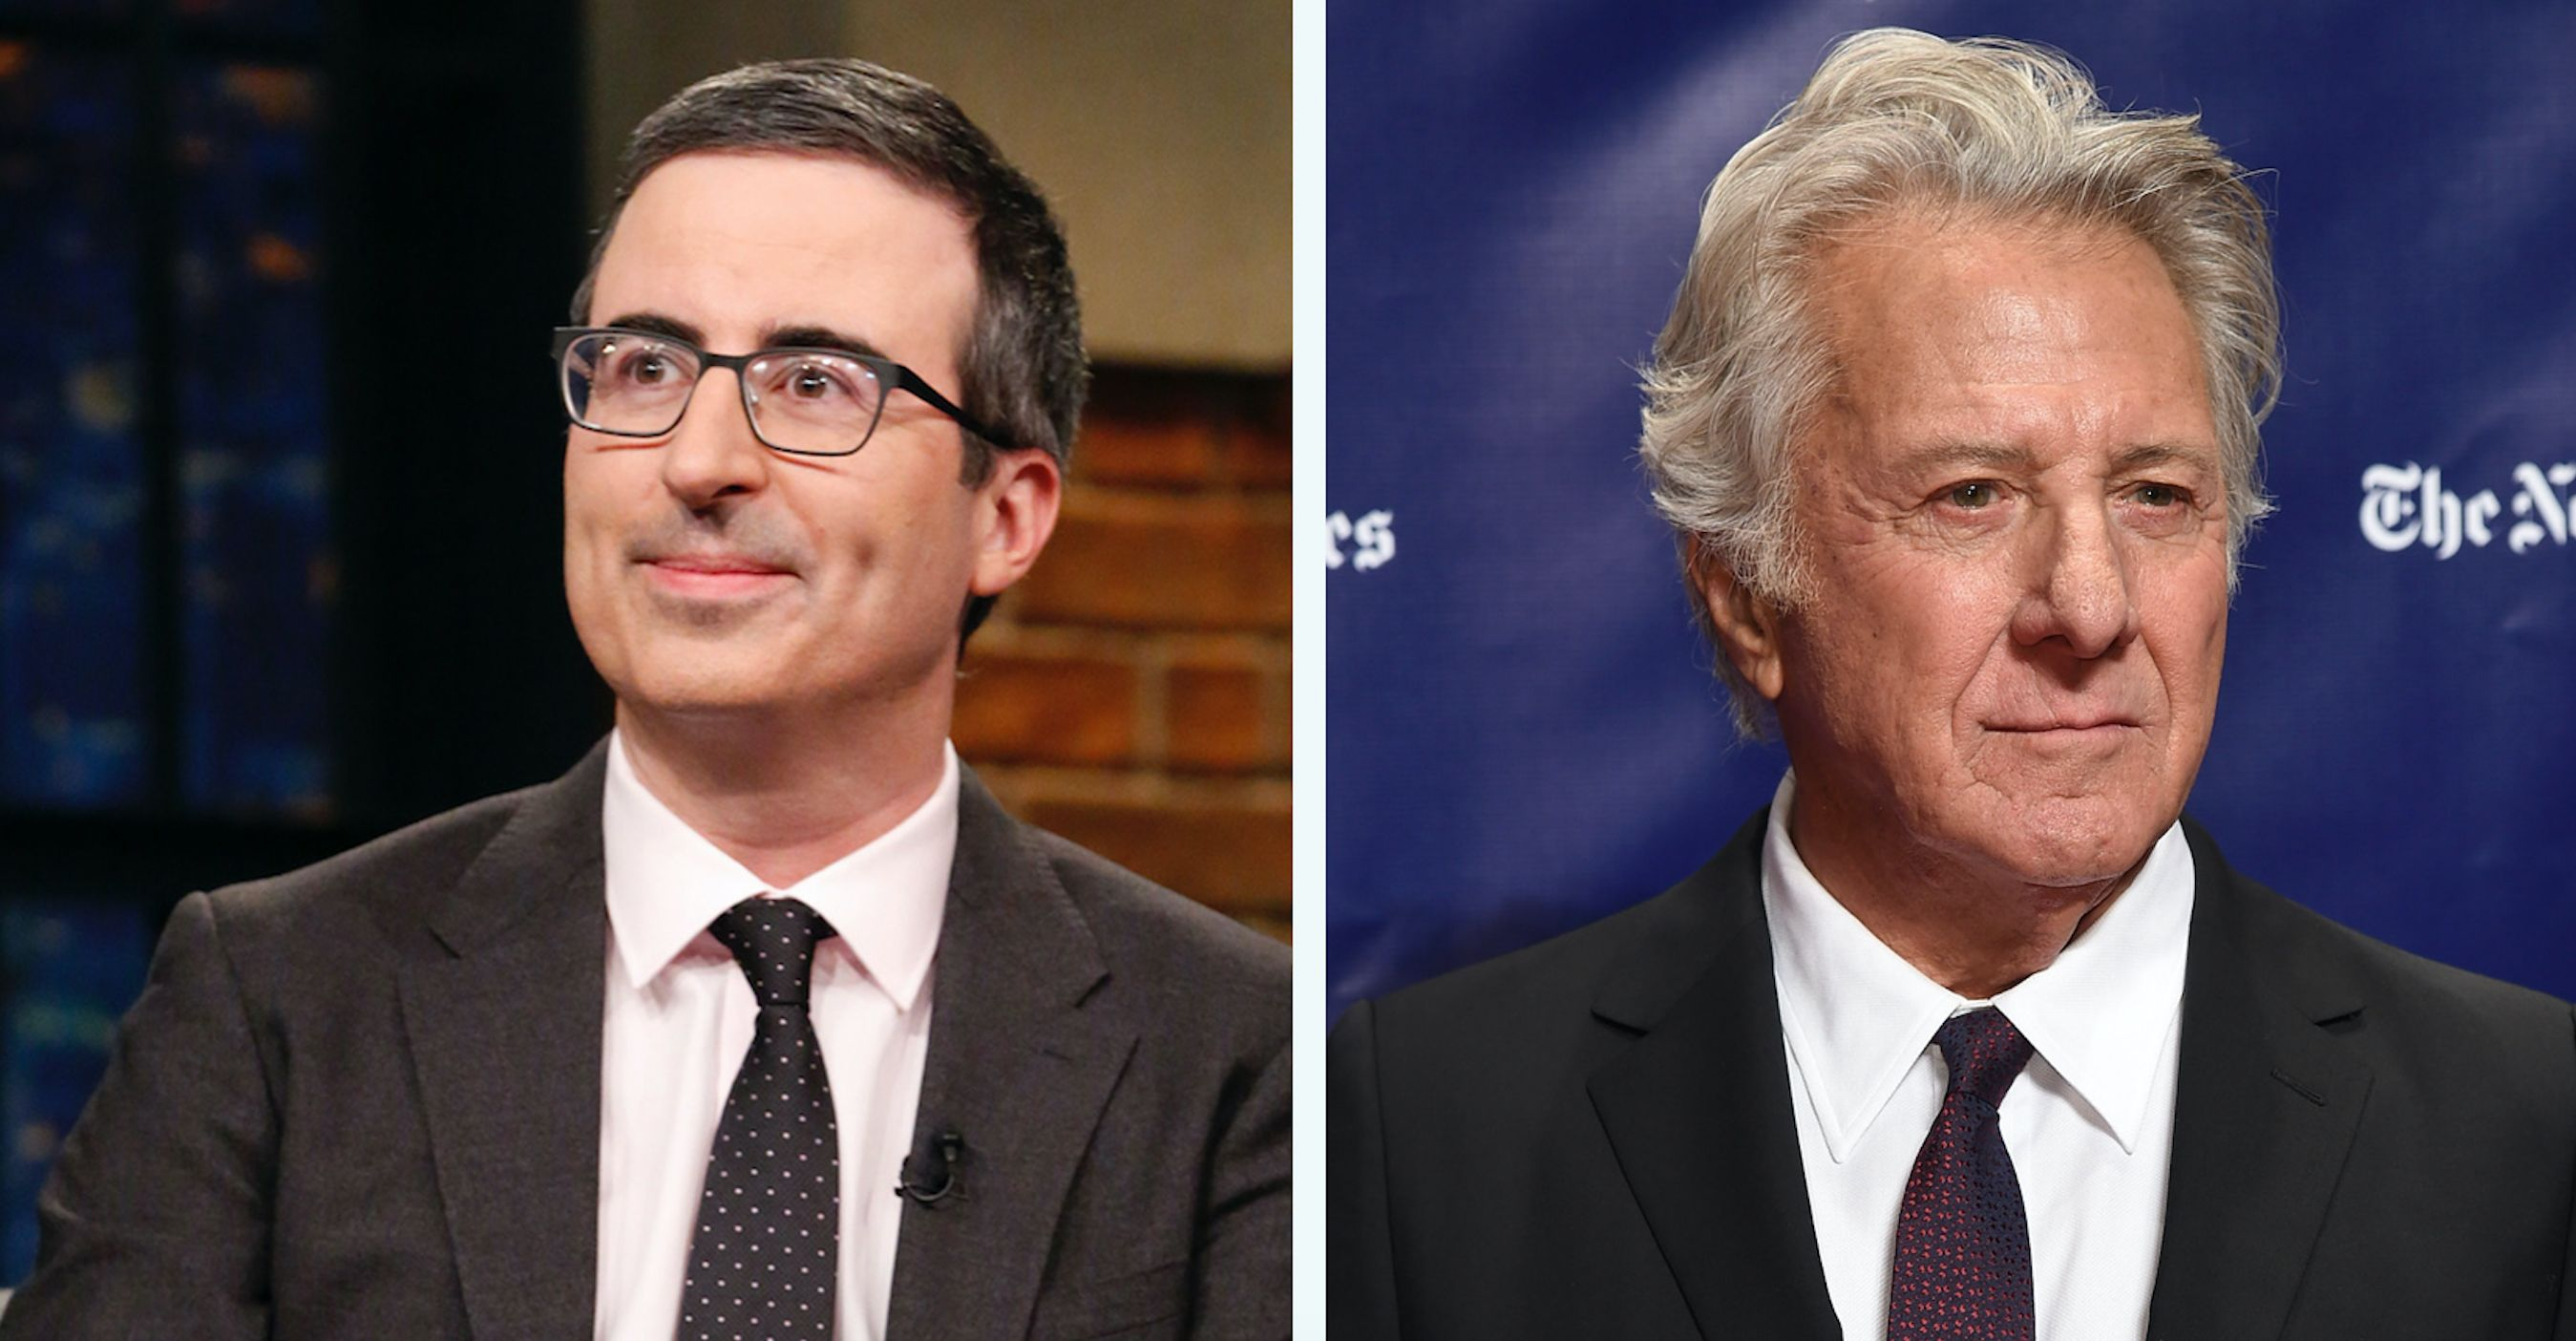 John Oliver Is Surprised Dustin Hoffman Didn't Expect Harassment Questions